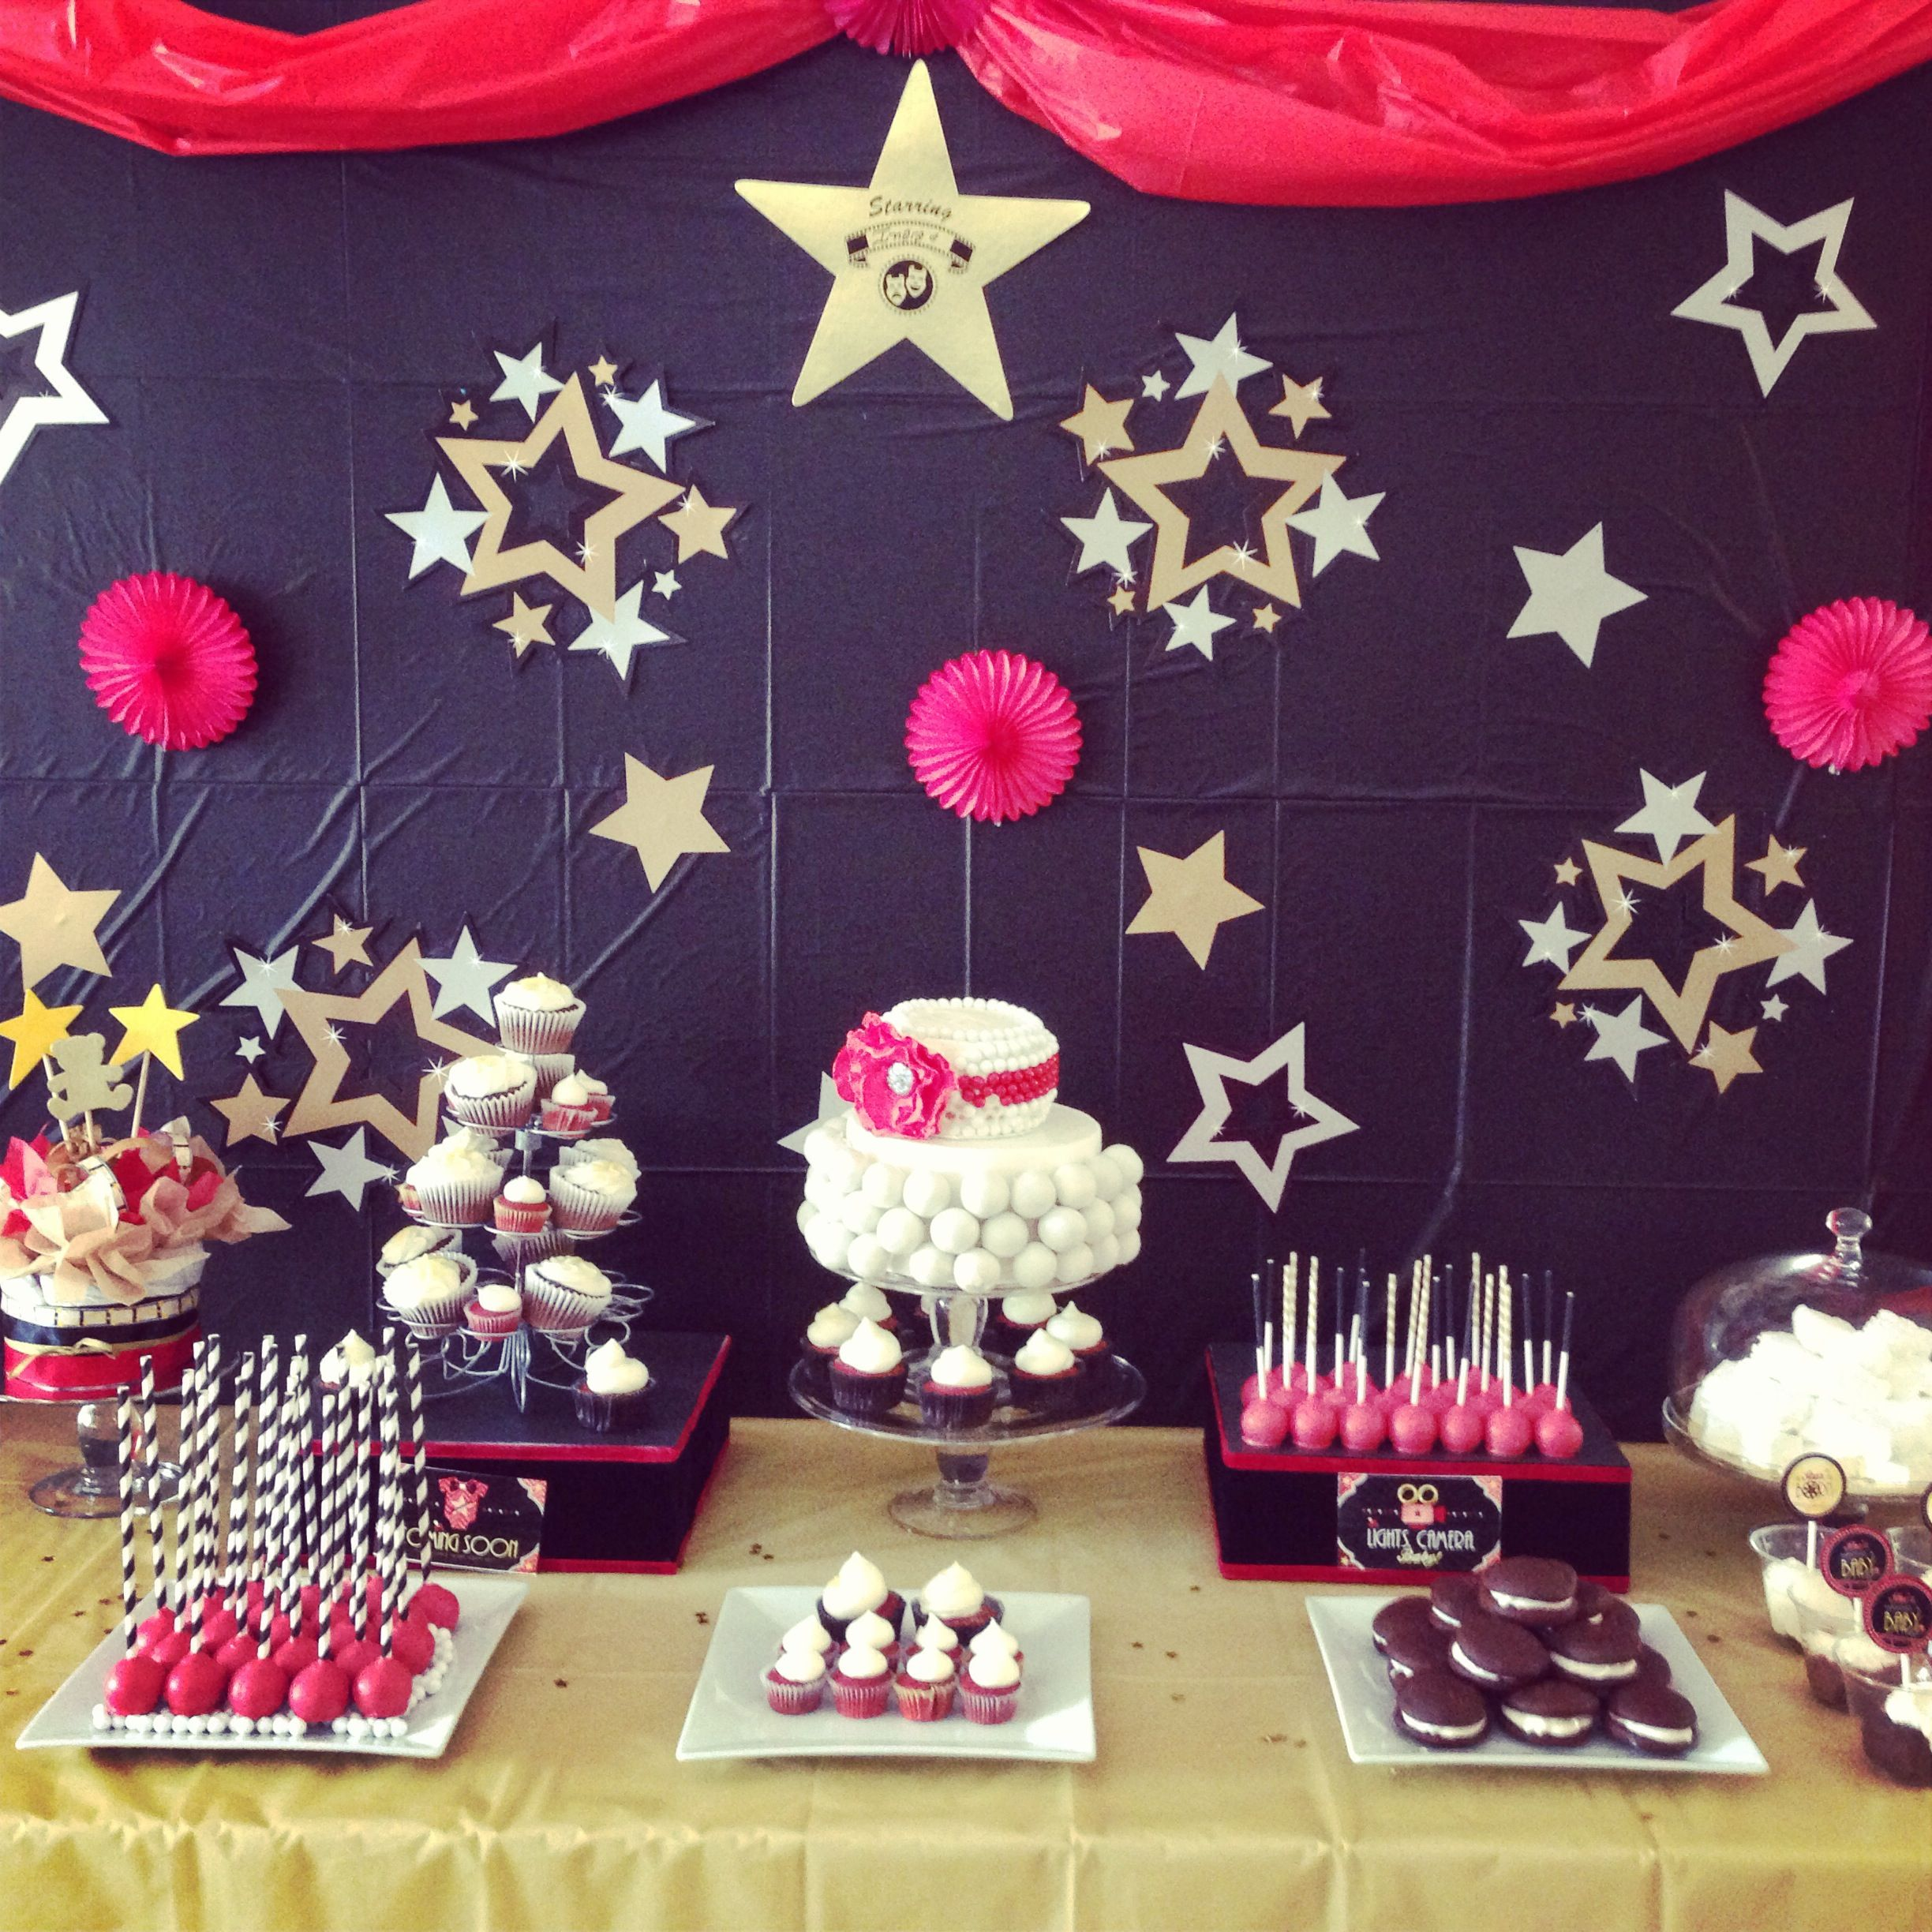 A star is born baby shower theme sweet table inspired by ...